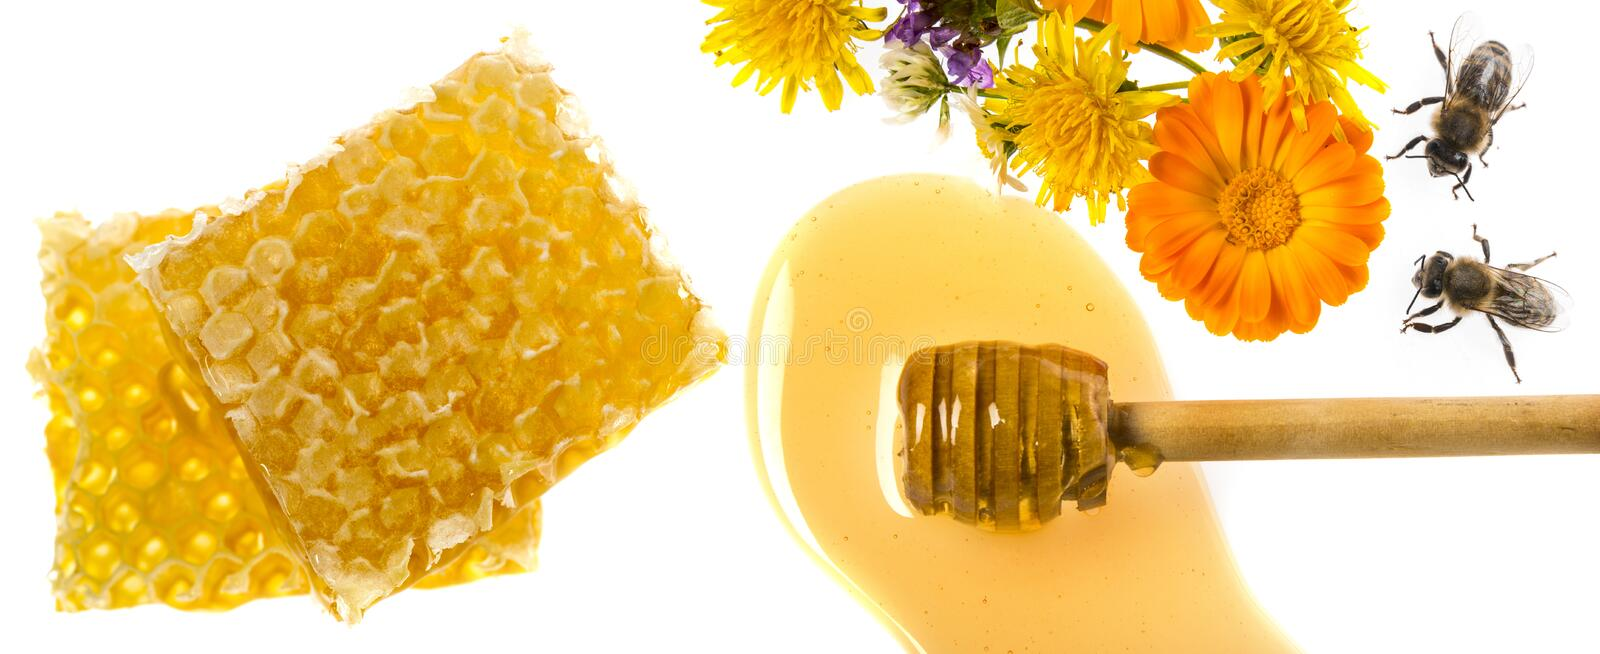 Fresh honey close up. Honey dripping from flower honey dipper isolated on a white background royalty free stock photo